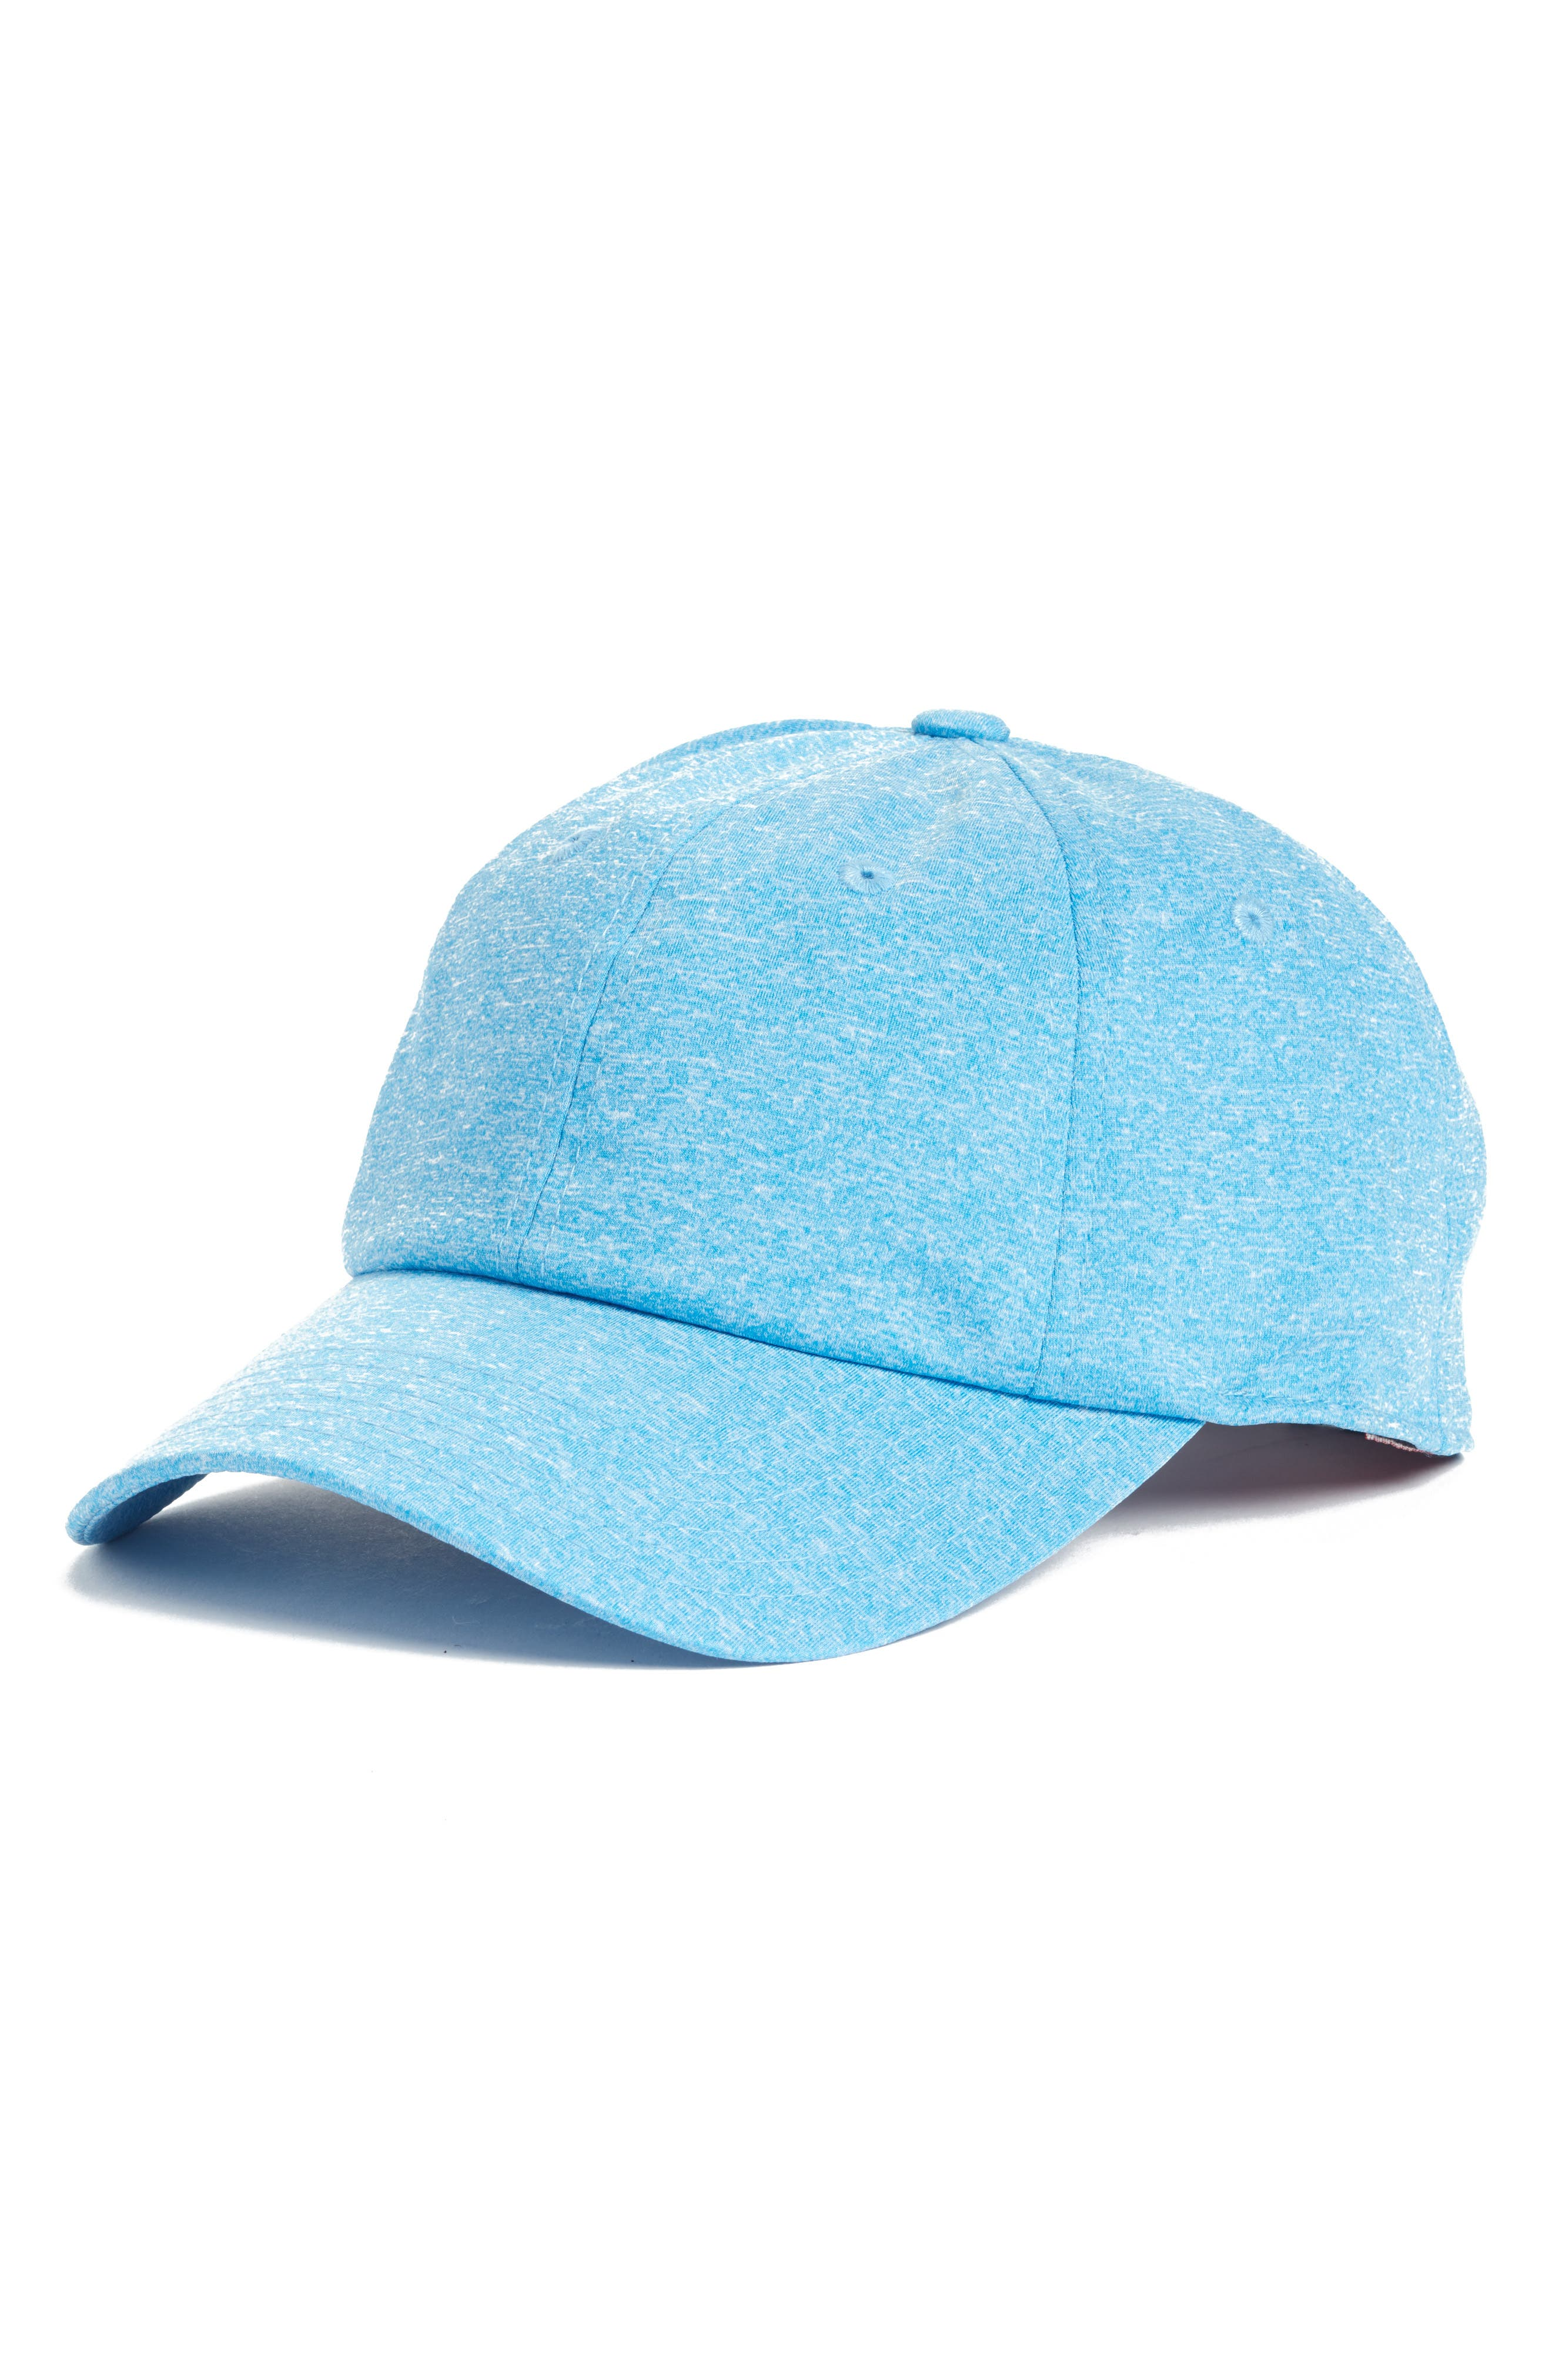 Heathered Tech Hat,                             Main thumbnail 1, color,                             BLUE